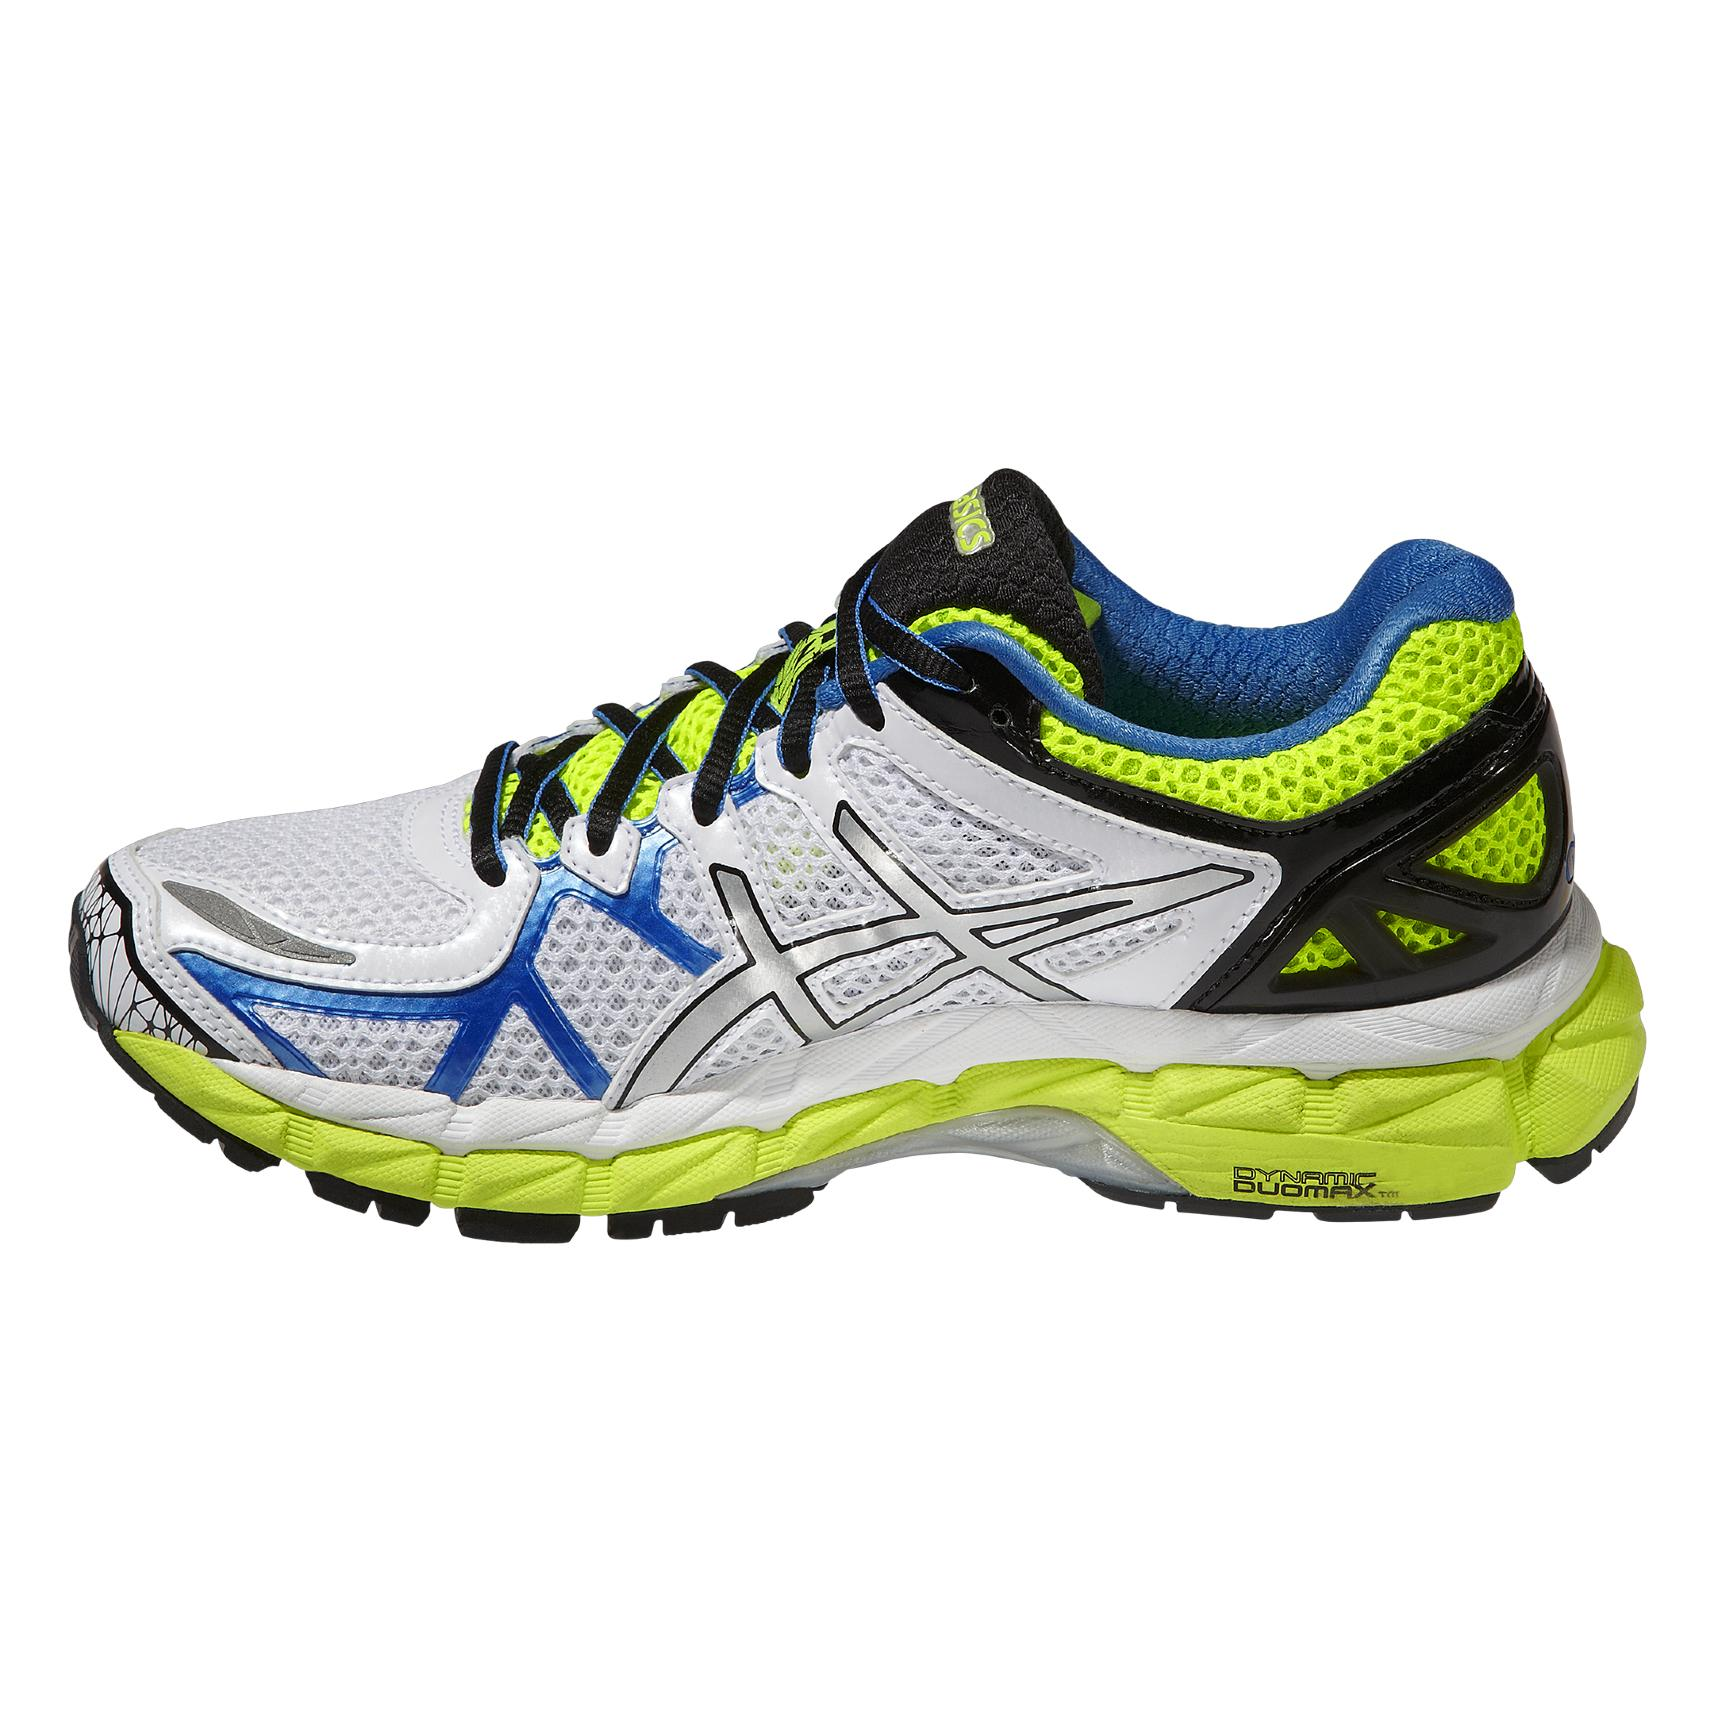 ef05271f1505 Asics Womens GEL-Kayano 21 Running Shoes - White Yellow - Tennisnuts.com